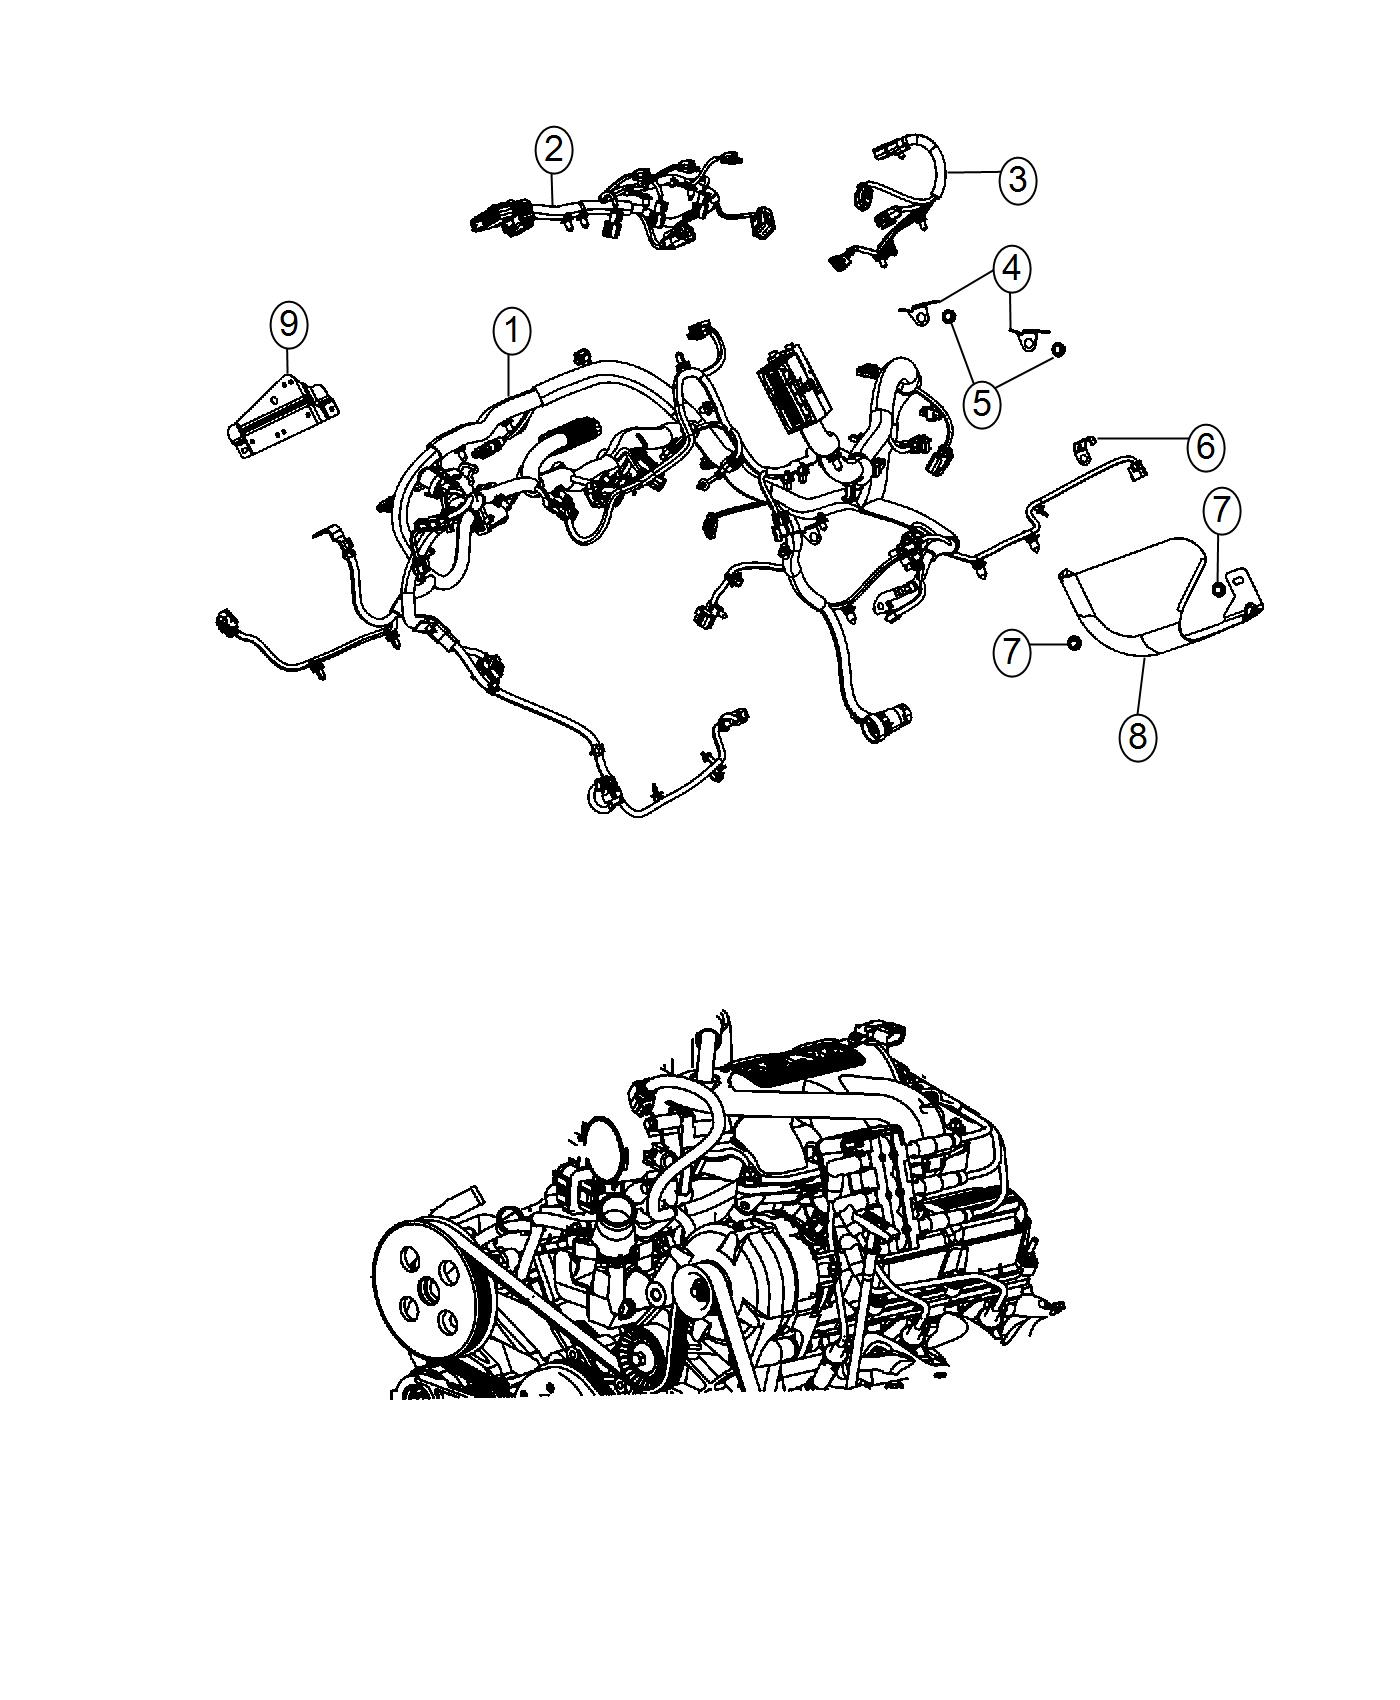 2012 jeep wrangler 3 6l engine diagram html